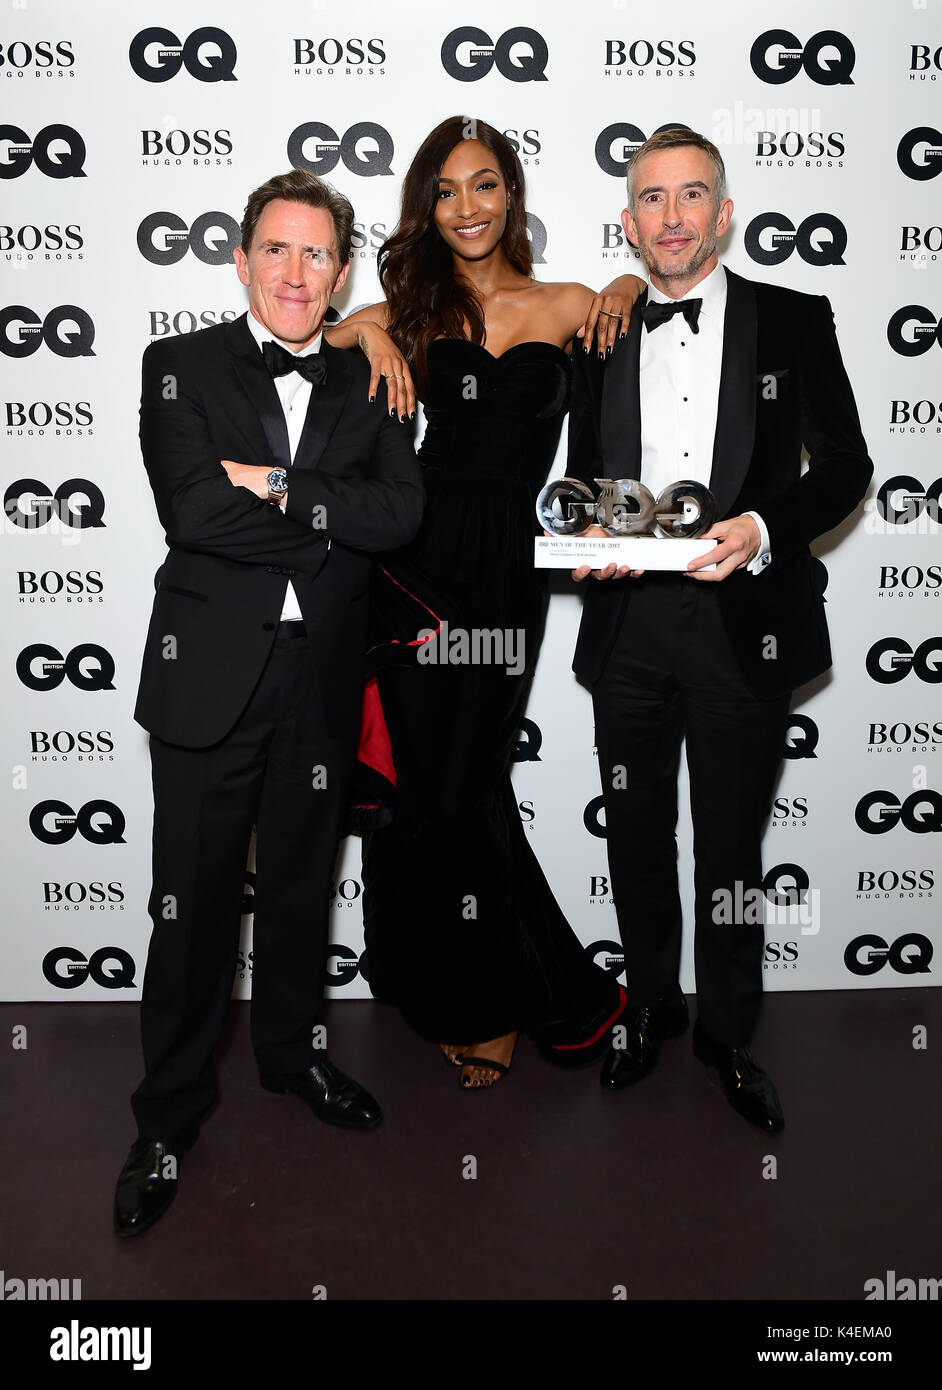 6c9fa030fe Rob Brydon (left) and Steve Coogan with their Best Comedians award pose  with Jourdan